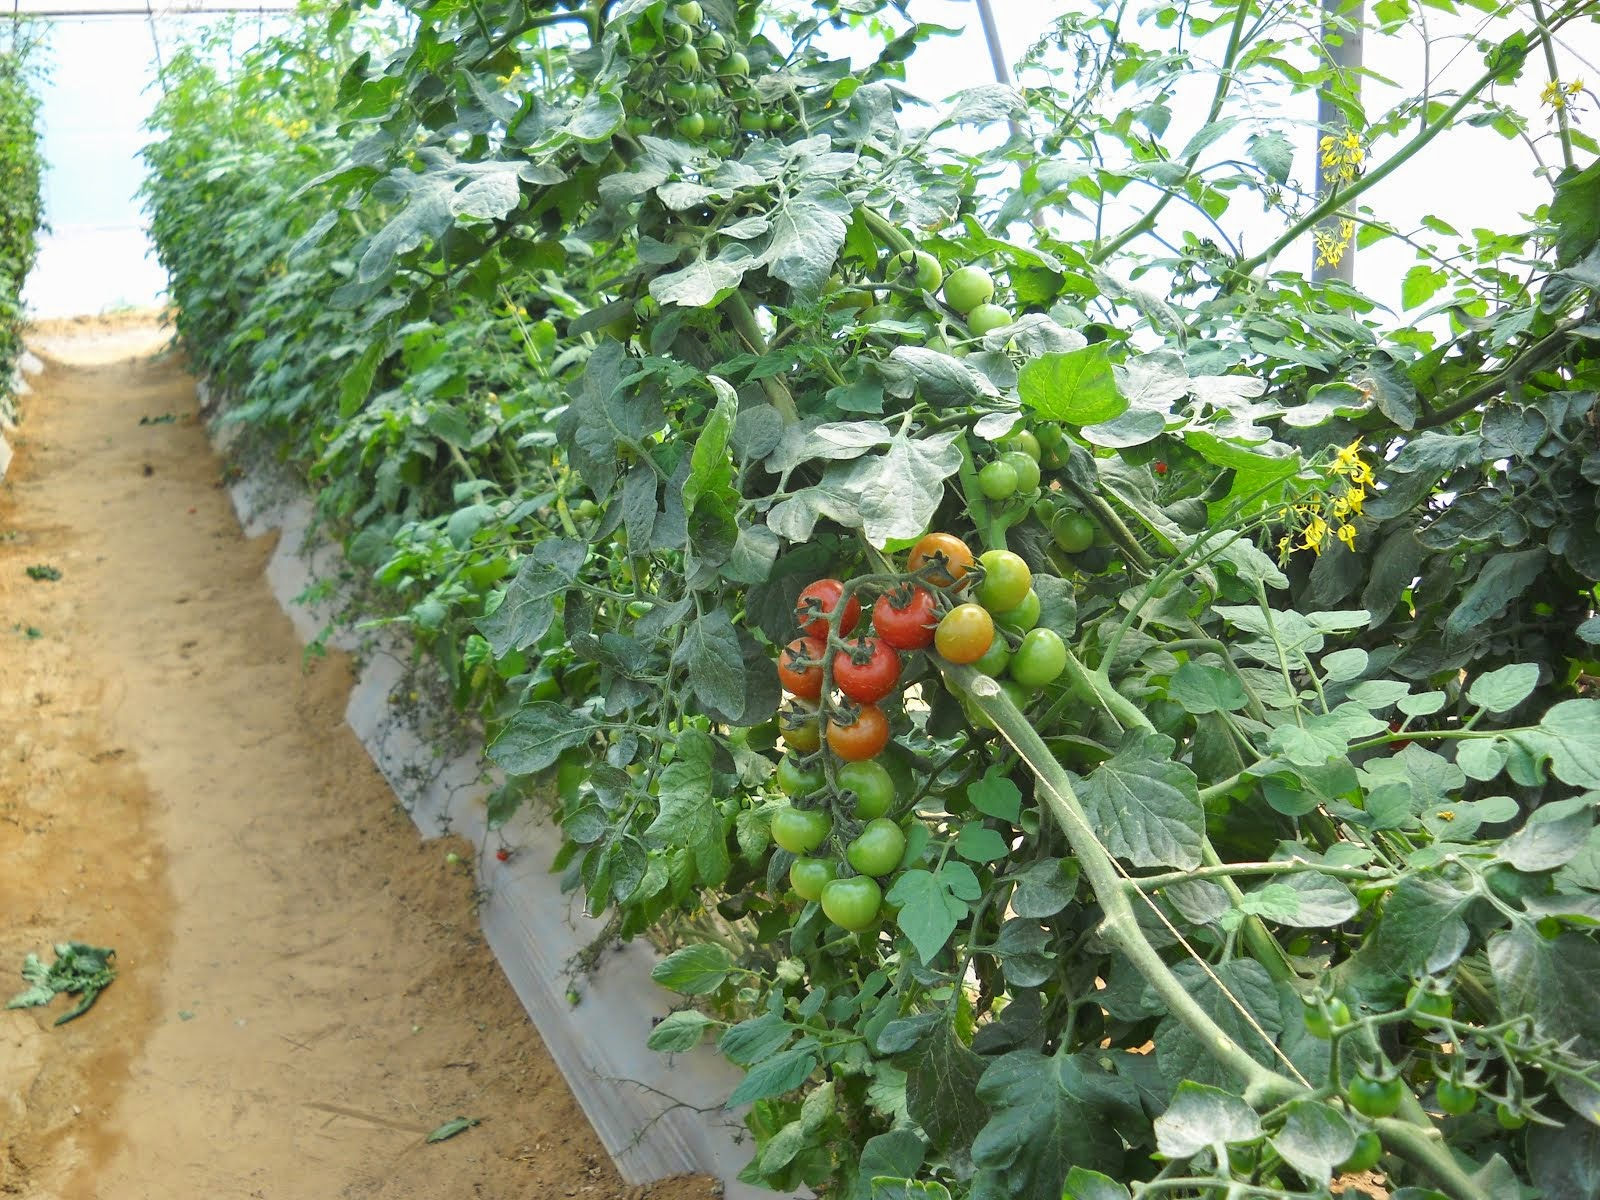 FILED BY GREEN HOUSE CHERRY TOMATO